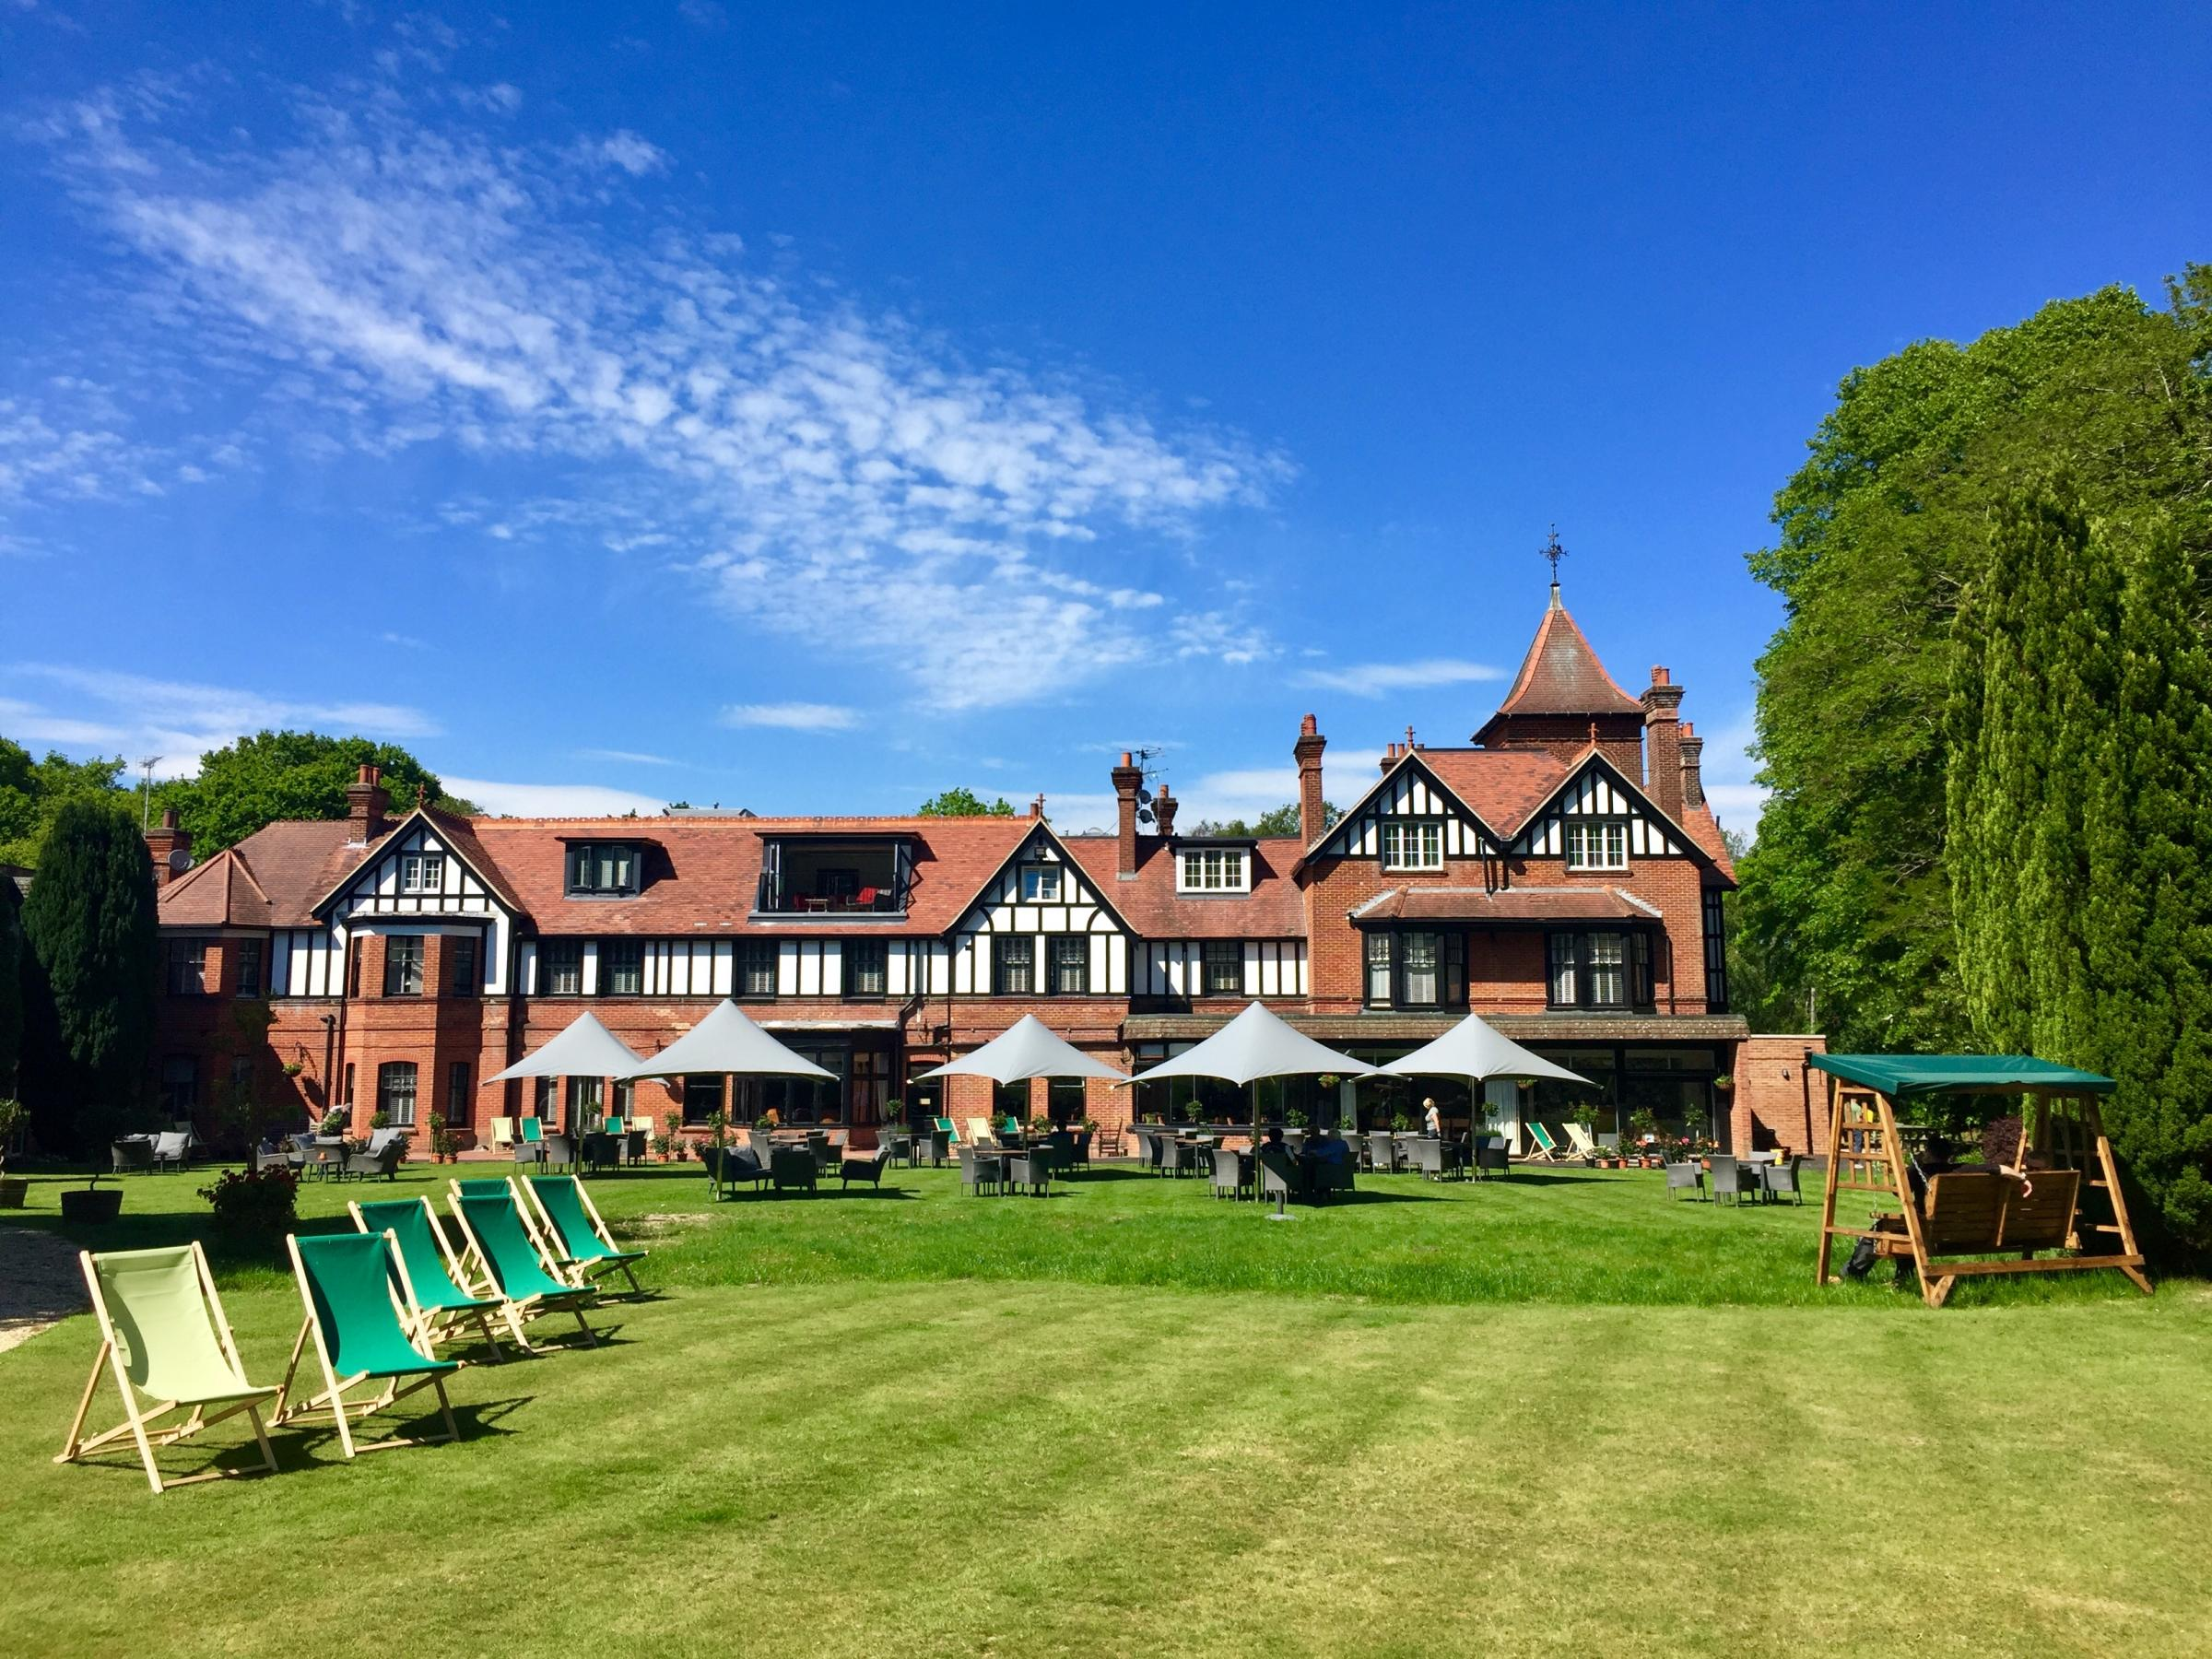 Restaurant review: Forest Park Country Hotel in Brockenhurst